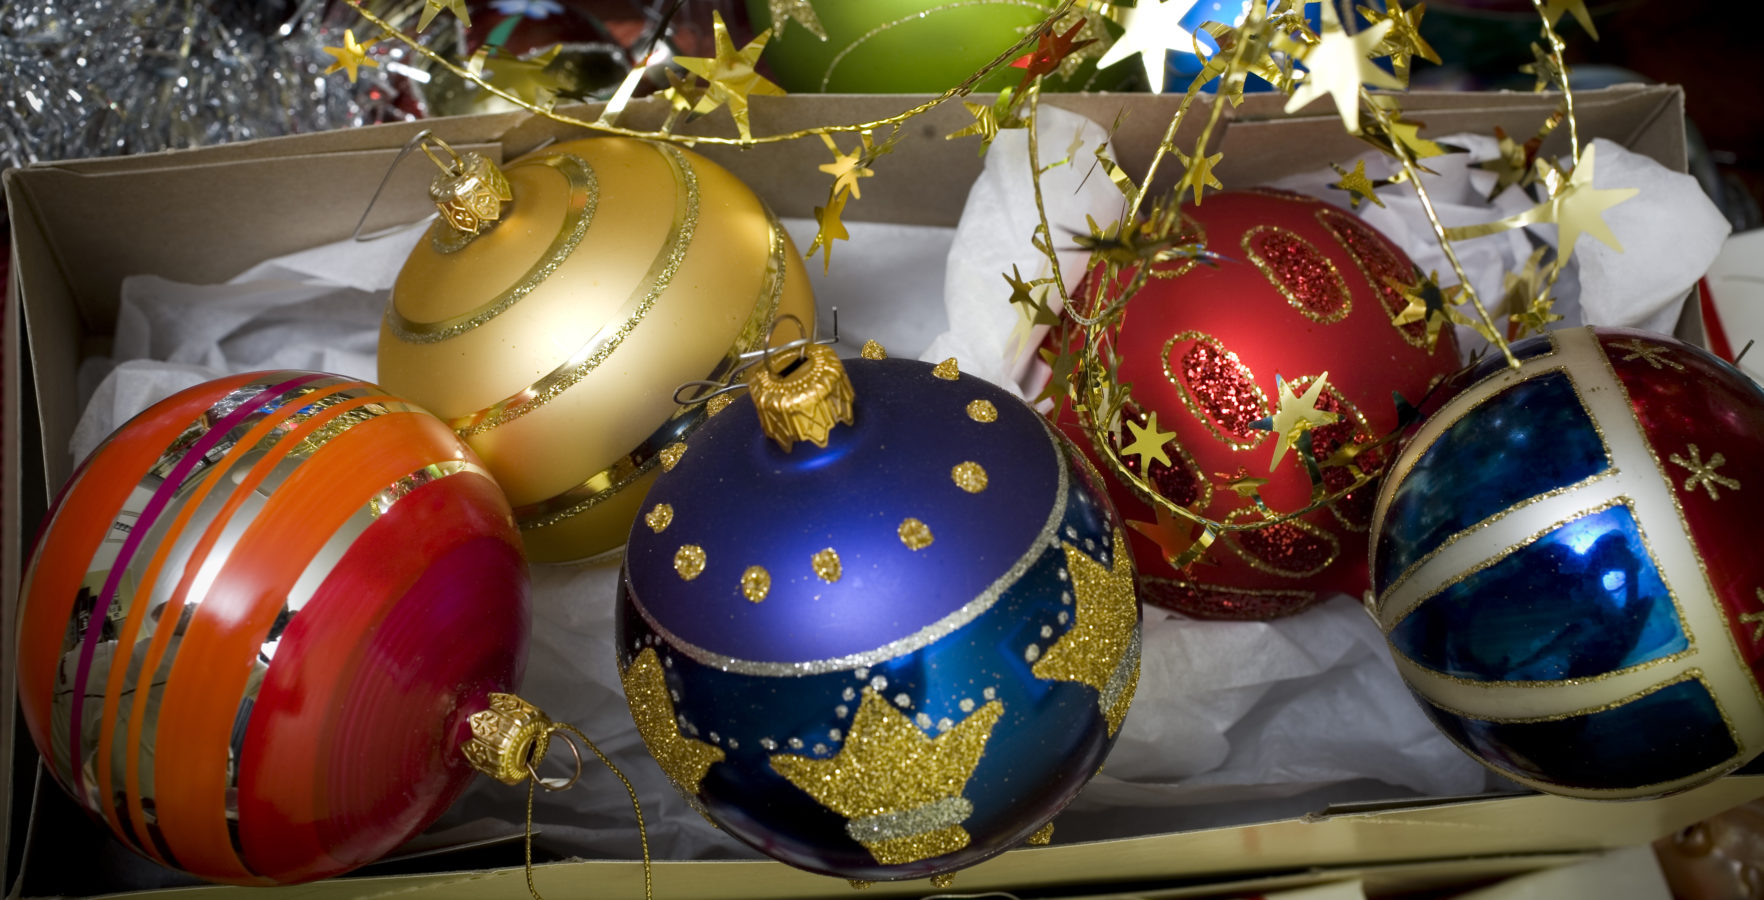 Christmas Decoration,  Close-Up Of Christmas Tree Balls  (Julpynt,  julgranskulor,  närbild)